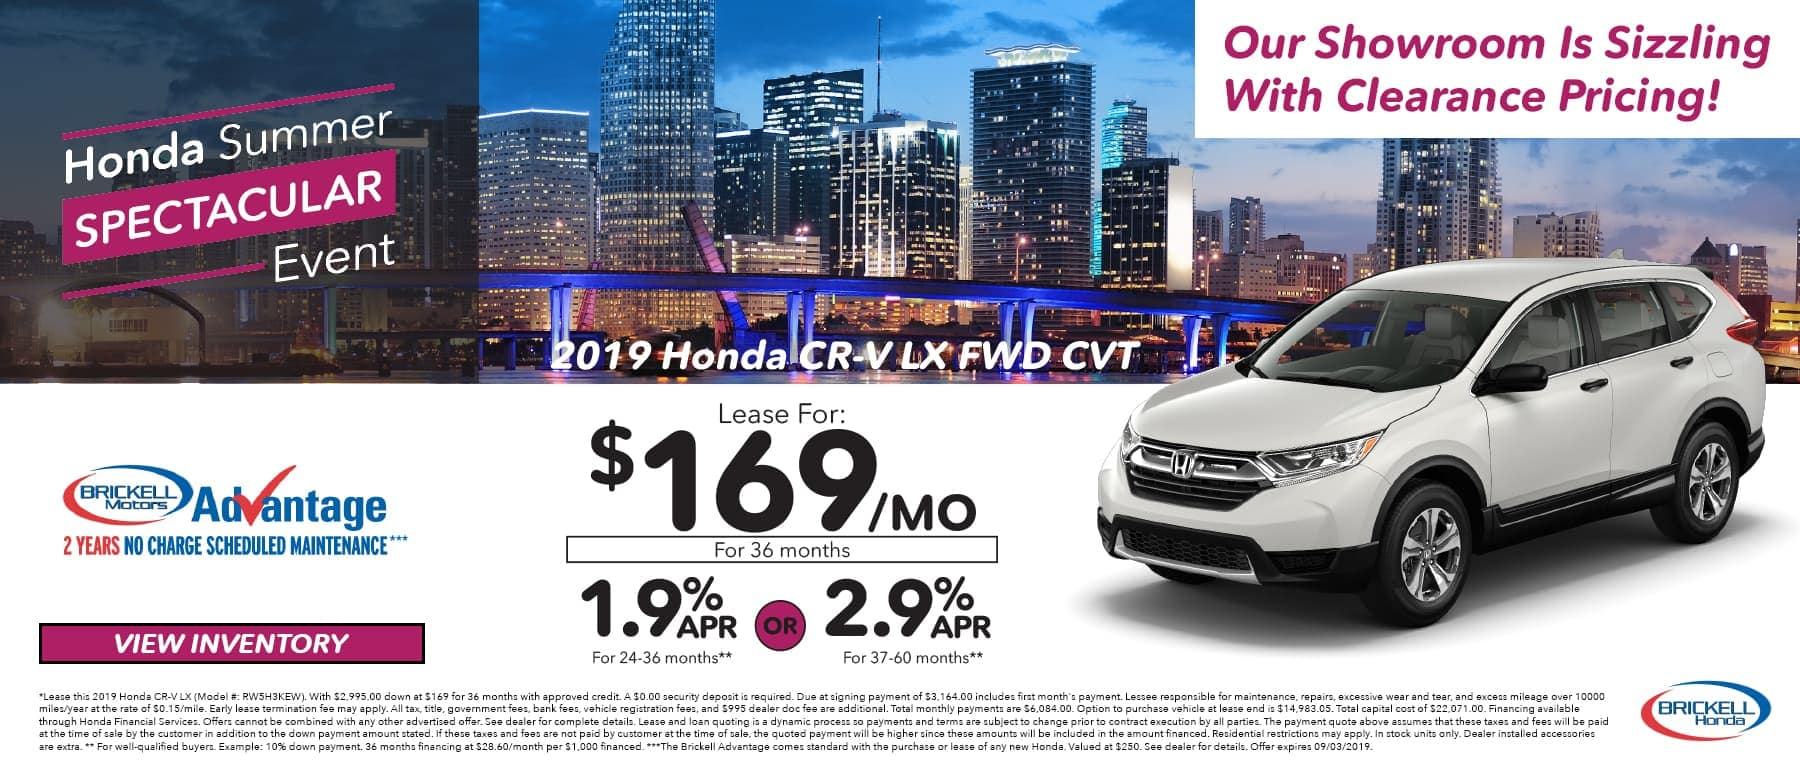 Honda Summer Event 2019 Honda CR-V LX FWD